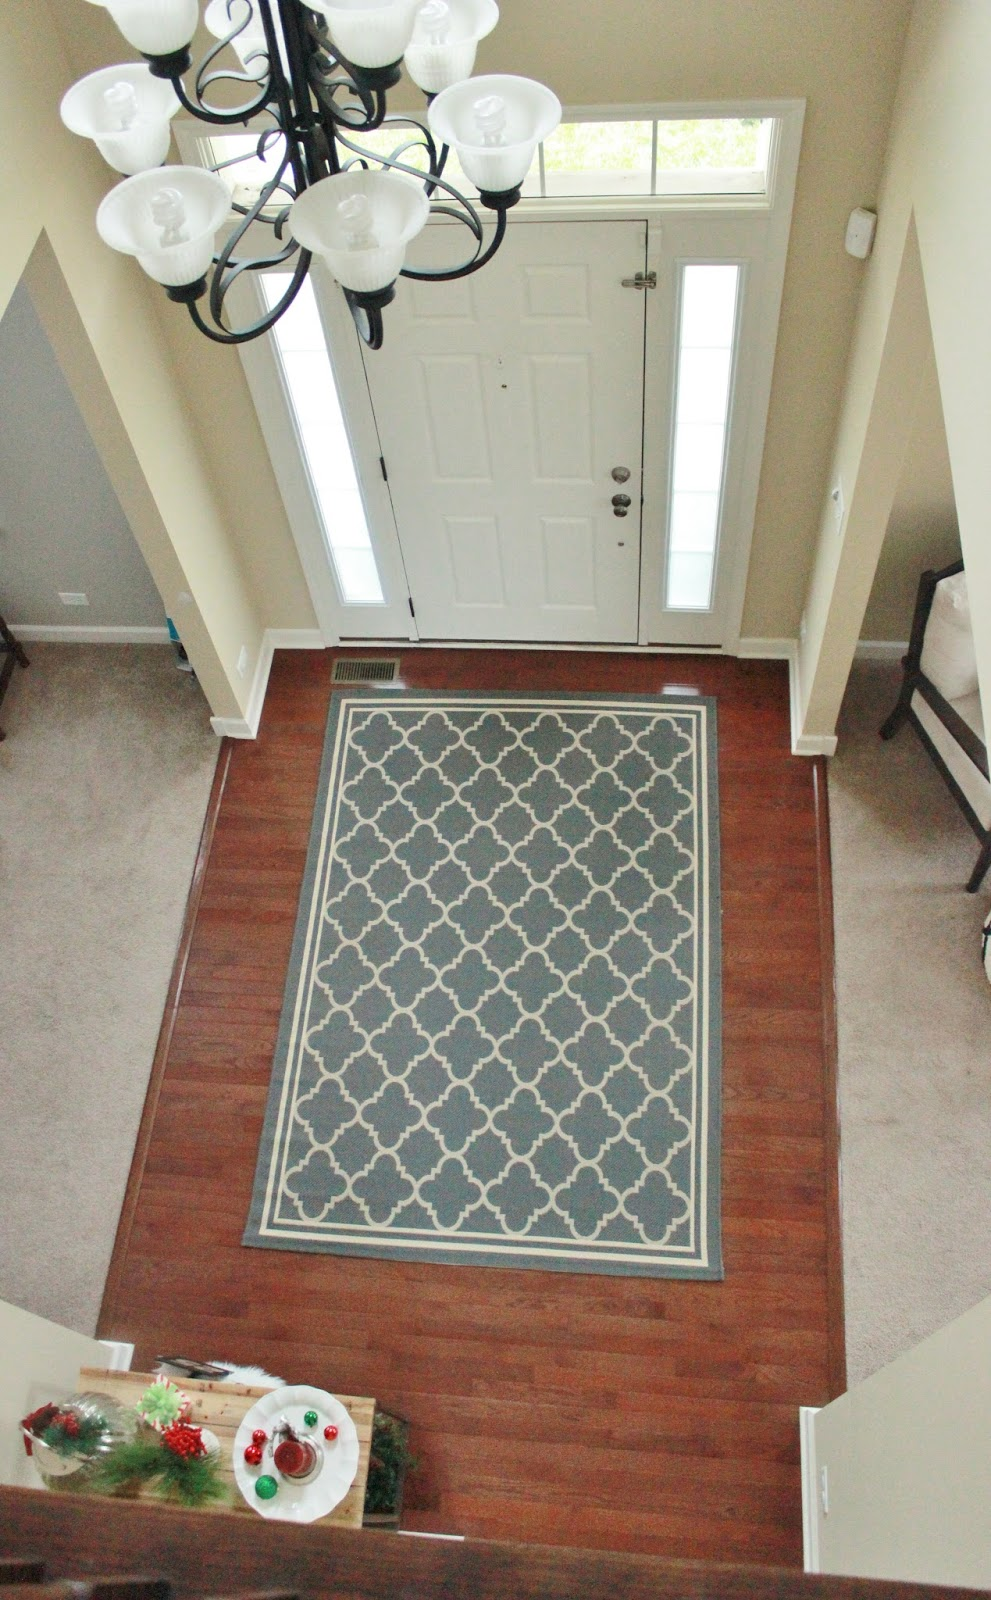 Best Rug Pads for Hardwood Floors